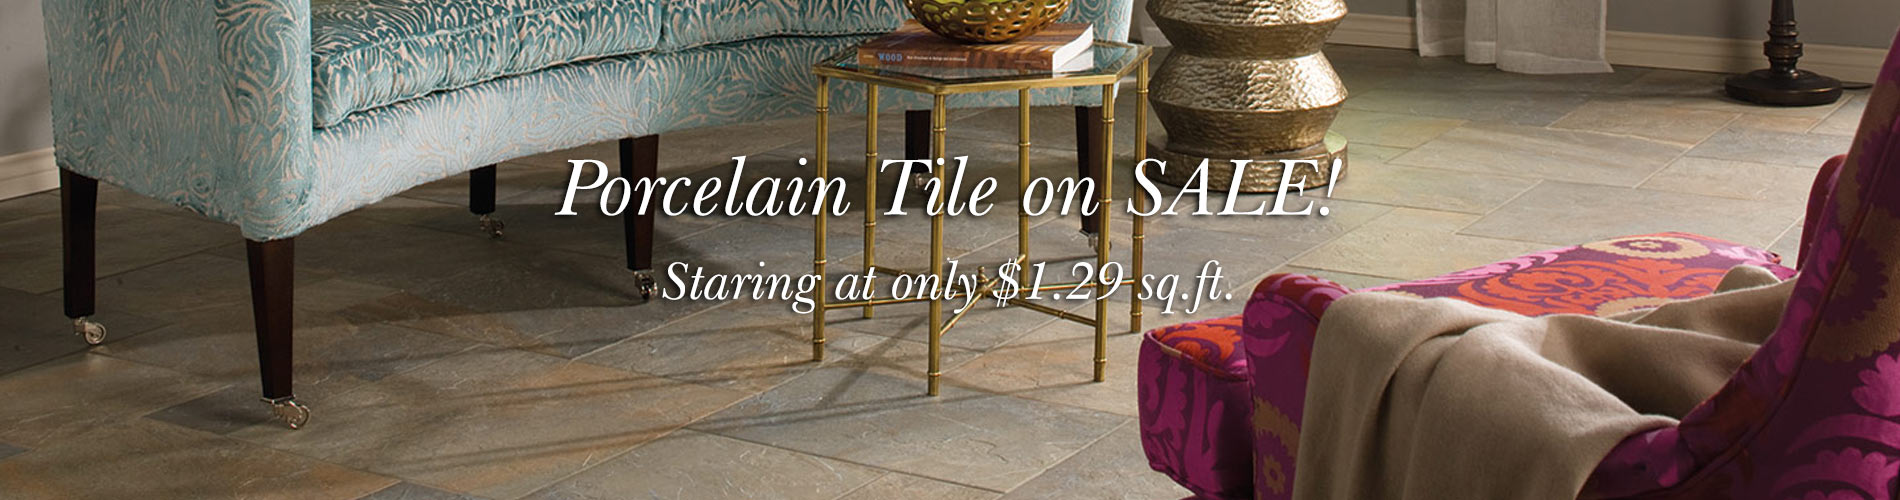 Porcelain Tile - Starting at only $1.29 a sq.ft